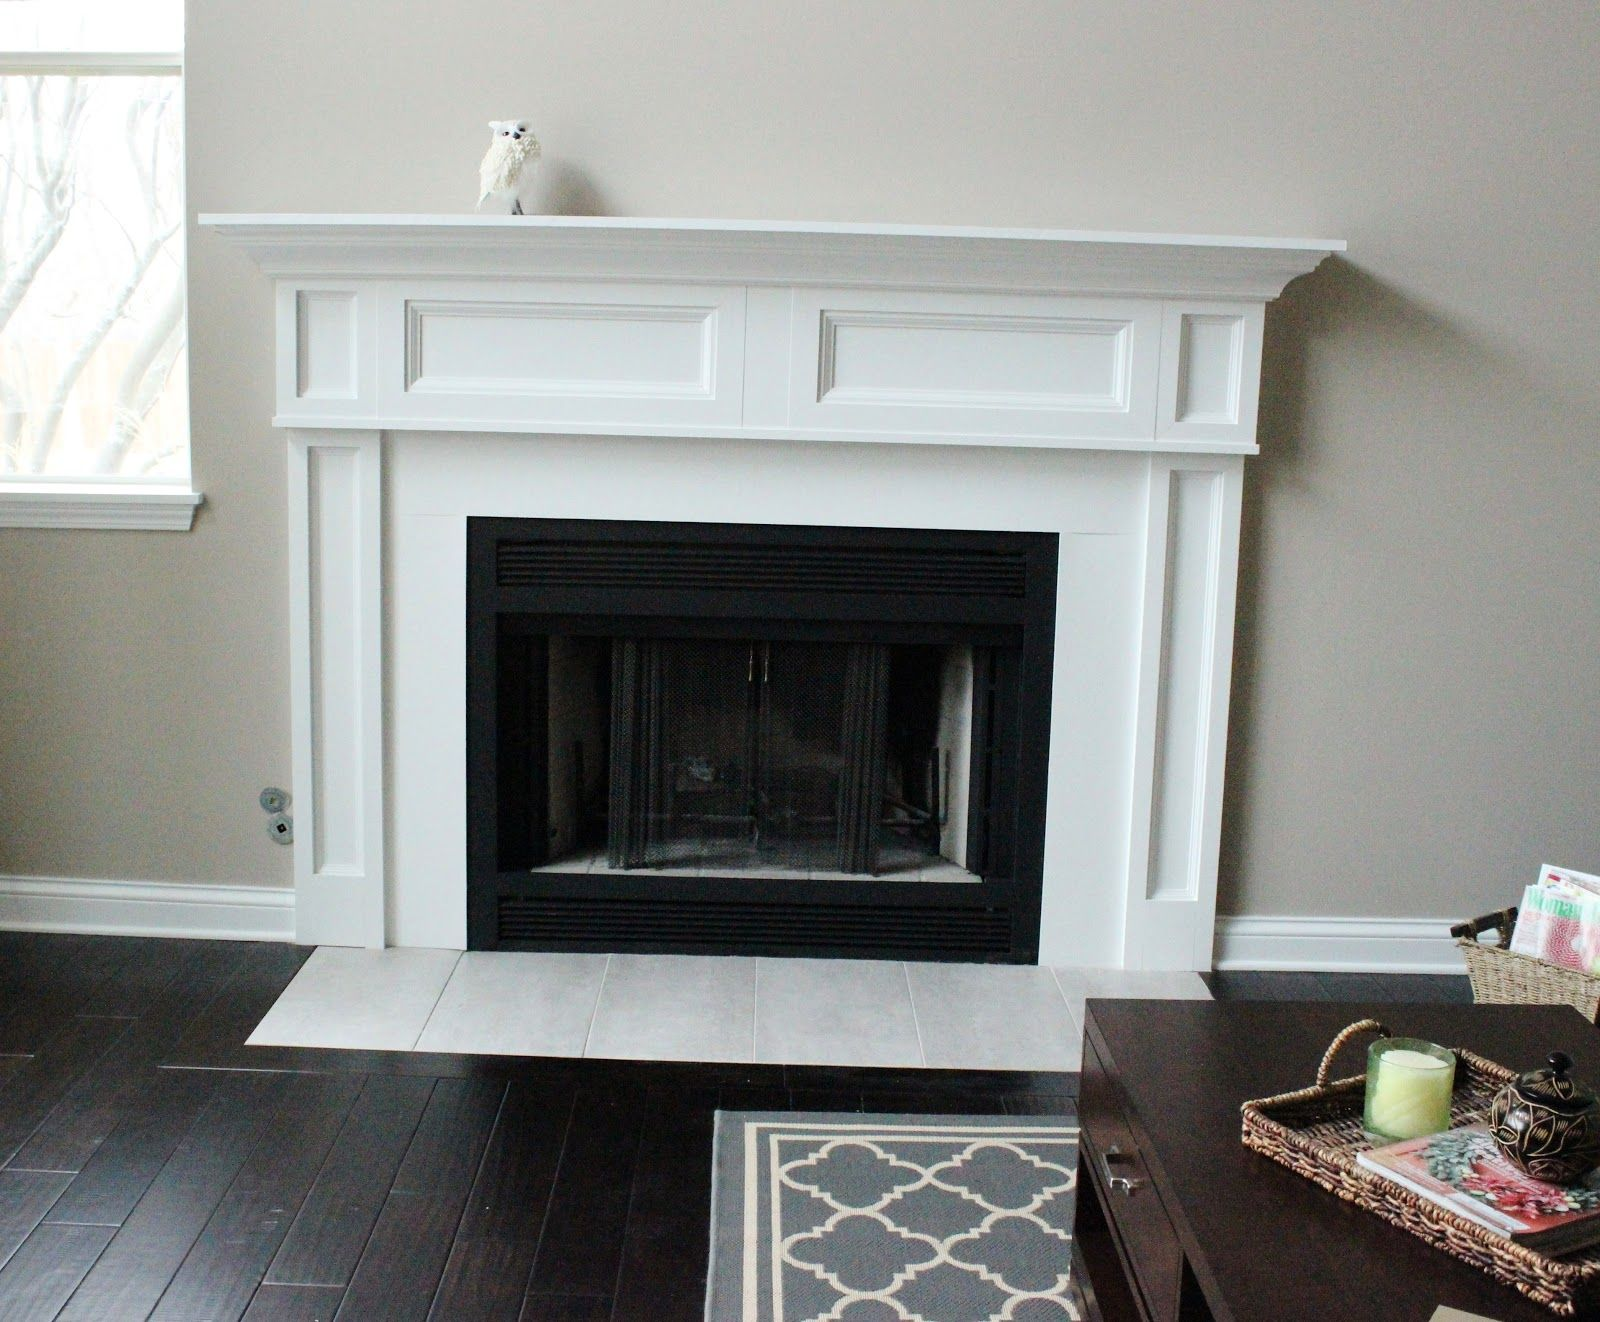 Fireplace Remodel The Before & the Happily Ever After